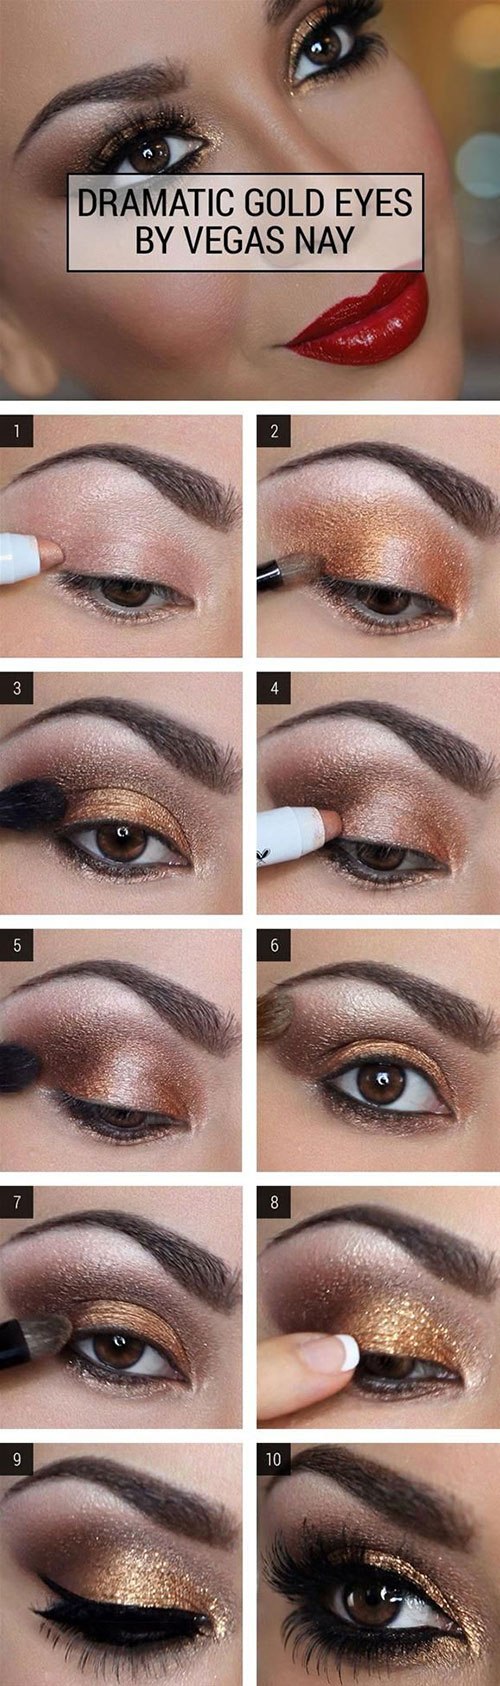 Gold Eye Makeup Tutorial How To Do Smokey Eye Makeup Top 10 Tutorial Pictures For 2019